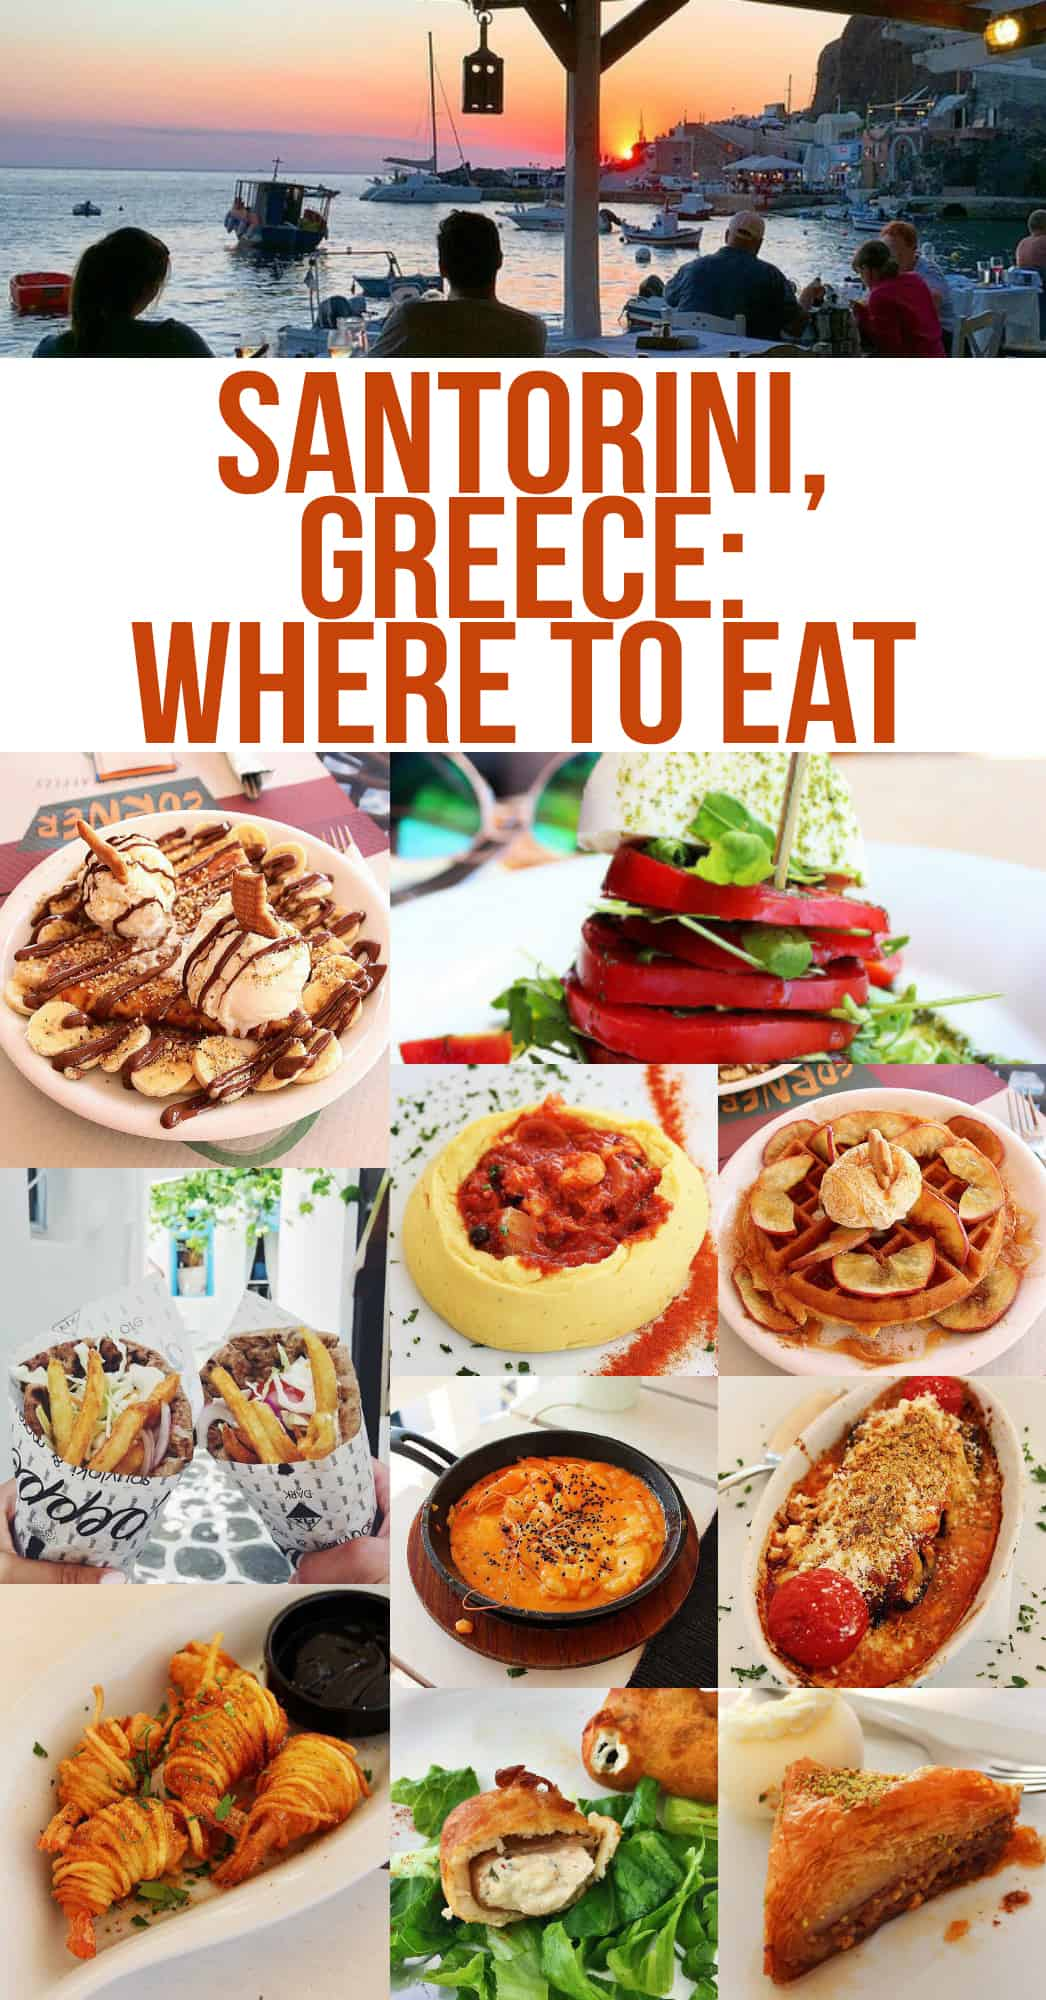 where-to-eat-santorini-greece copy